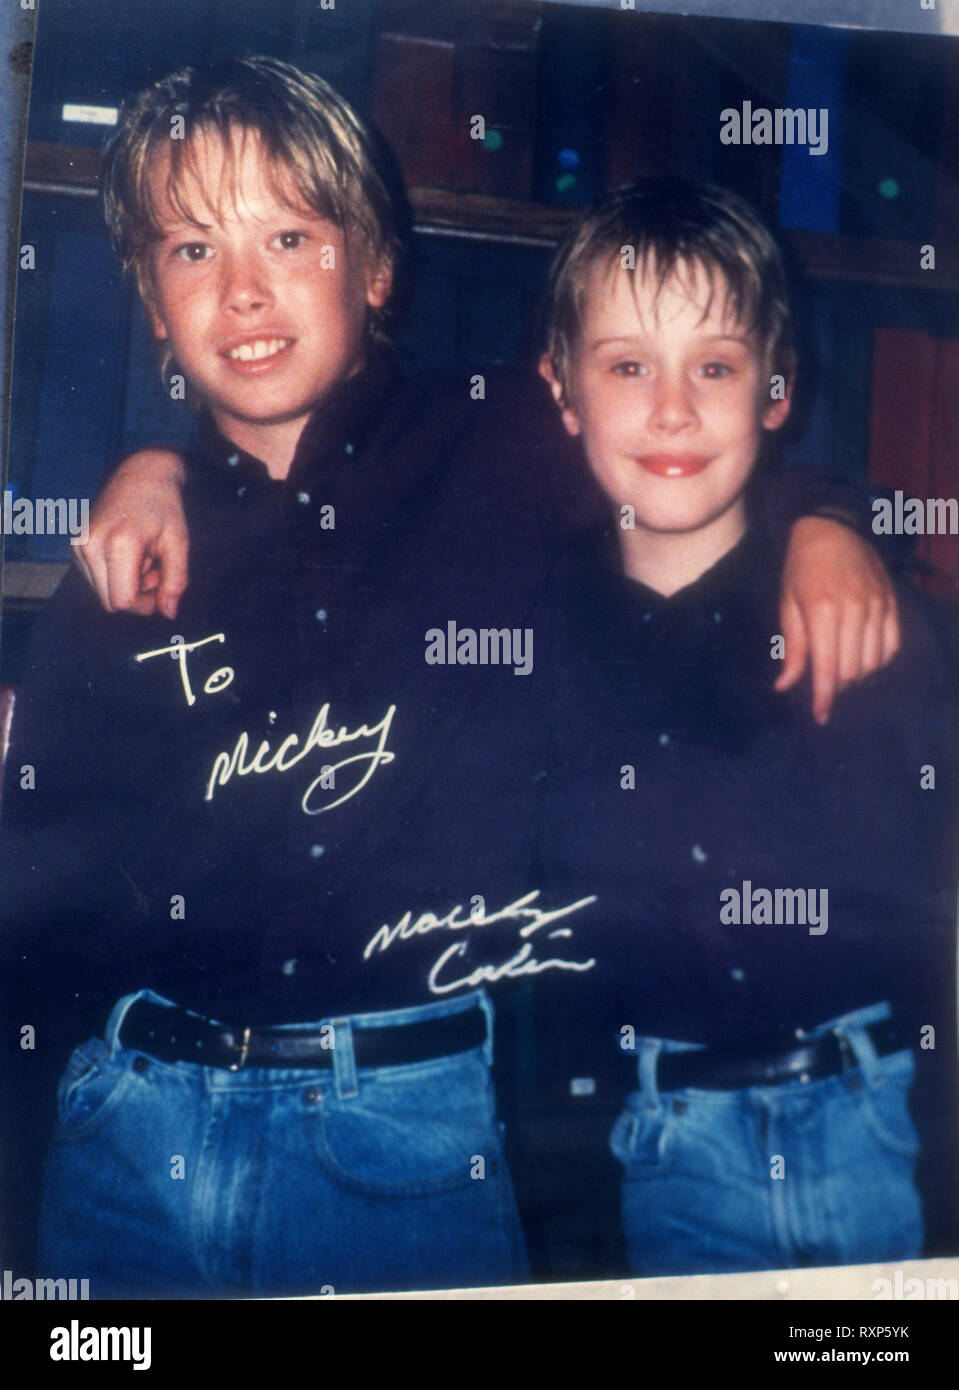 LOS ANGELES, CA - FEBRUARY 13: (EXCLUSIVE) Stuntman/actor Mickey Cassidy poses in photo with Macaulay Culkin in his home at a photo shoot on February 13, 1994 in Los Angeles, California. Photo by Barry King/Alamy Stock Photo - Stock Image